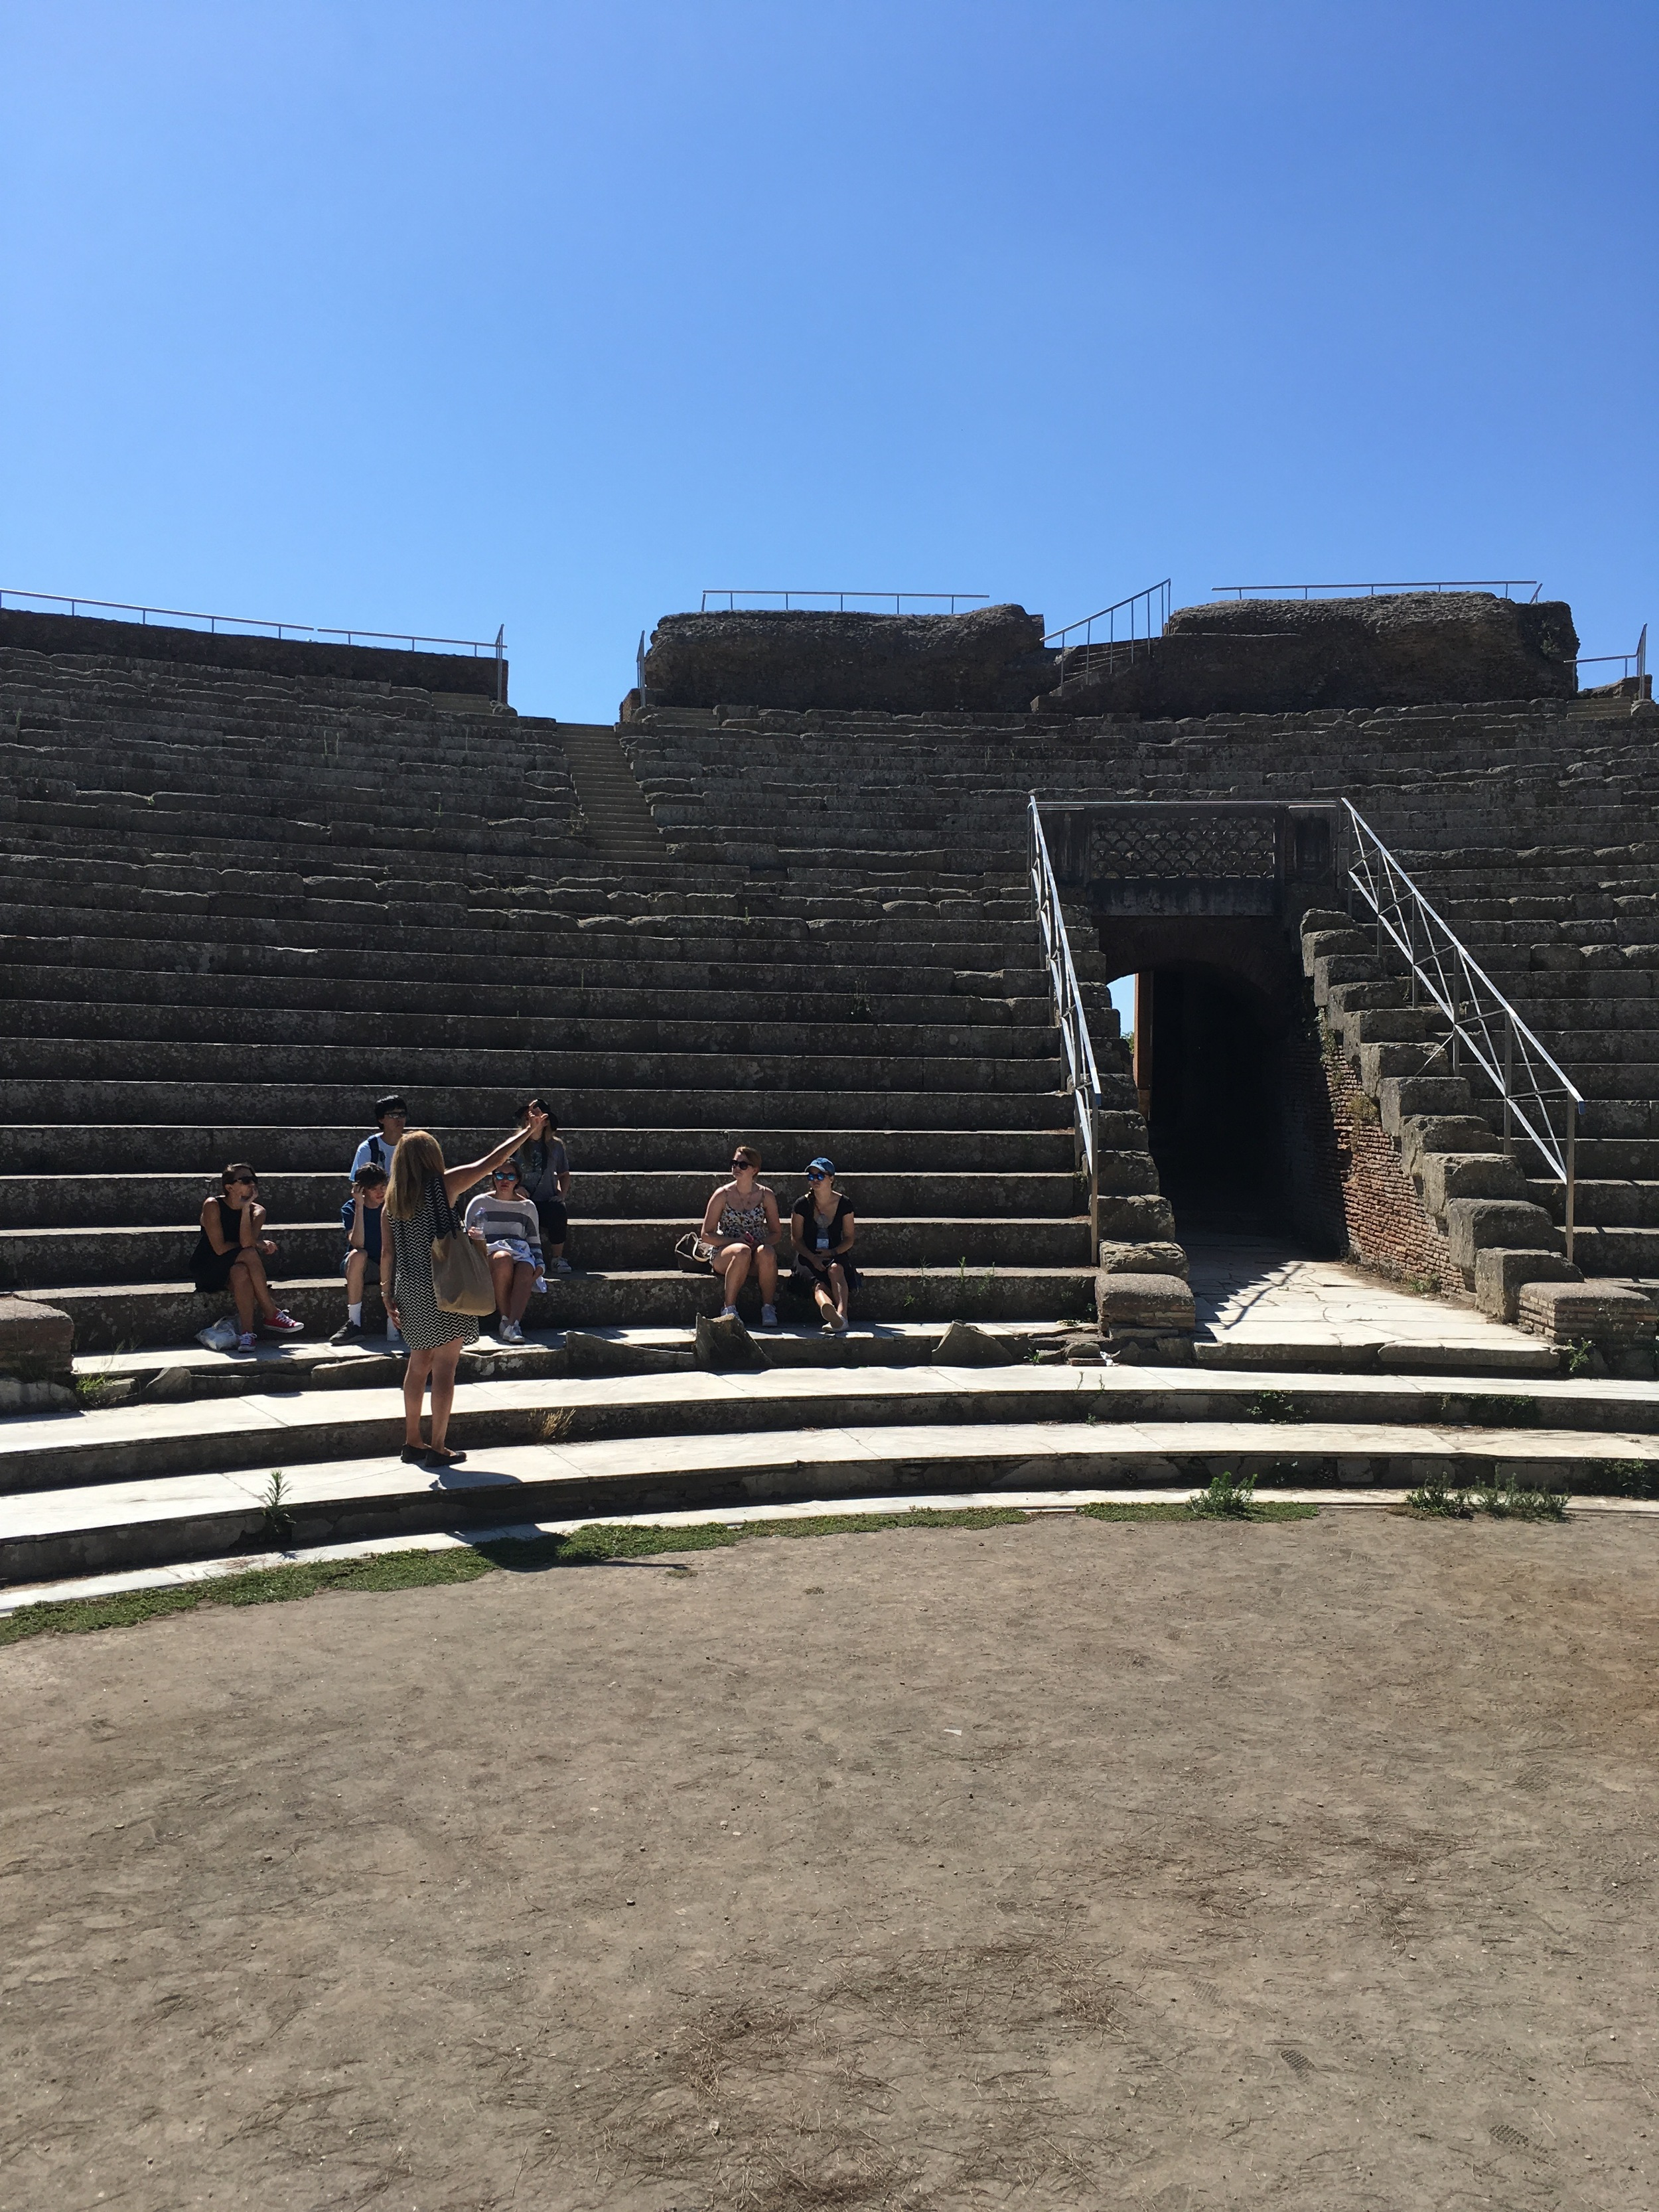 In Ostia Antica, the group gets a lesson from archeologist Crispin Corrado.